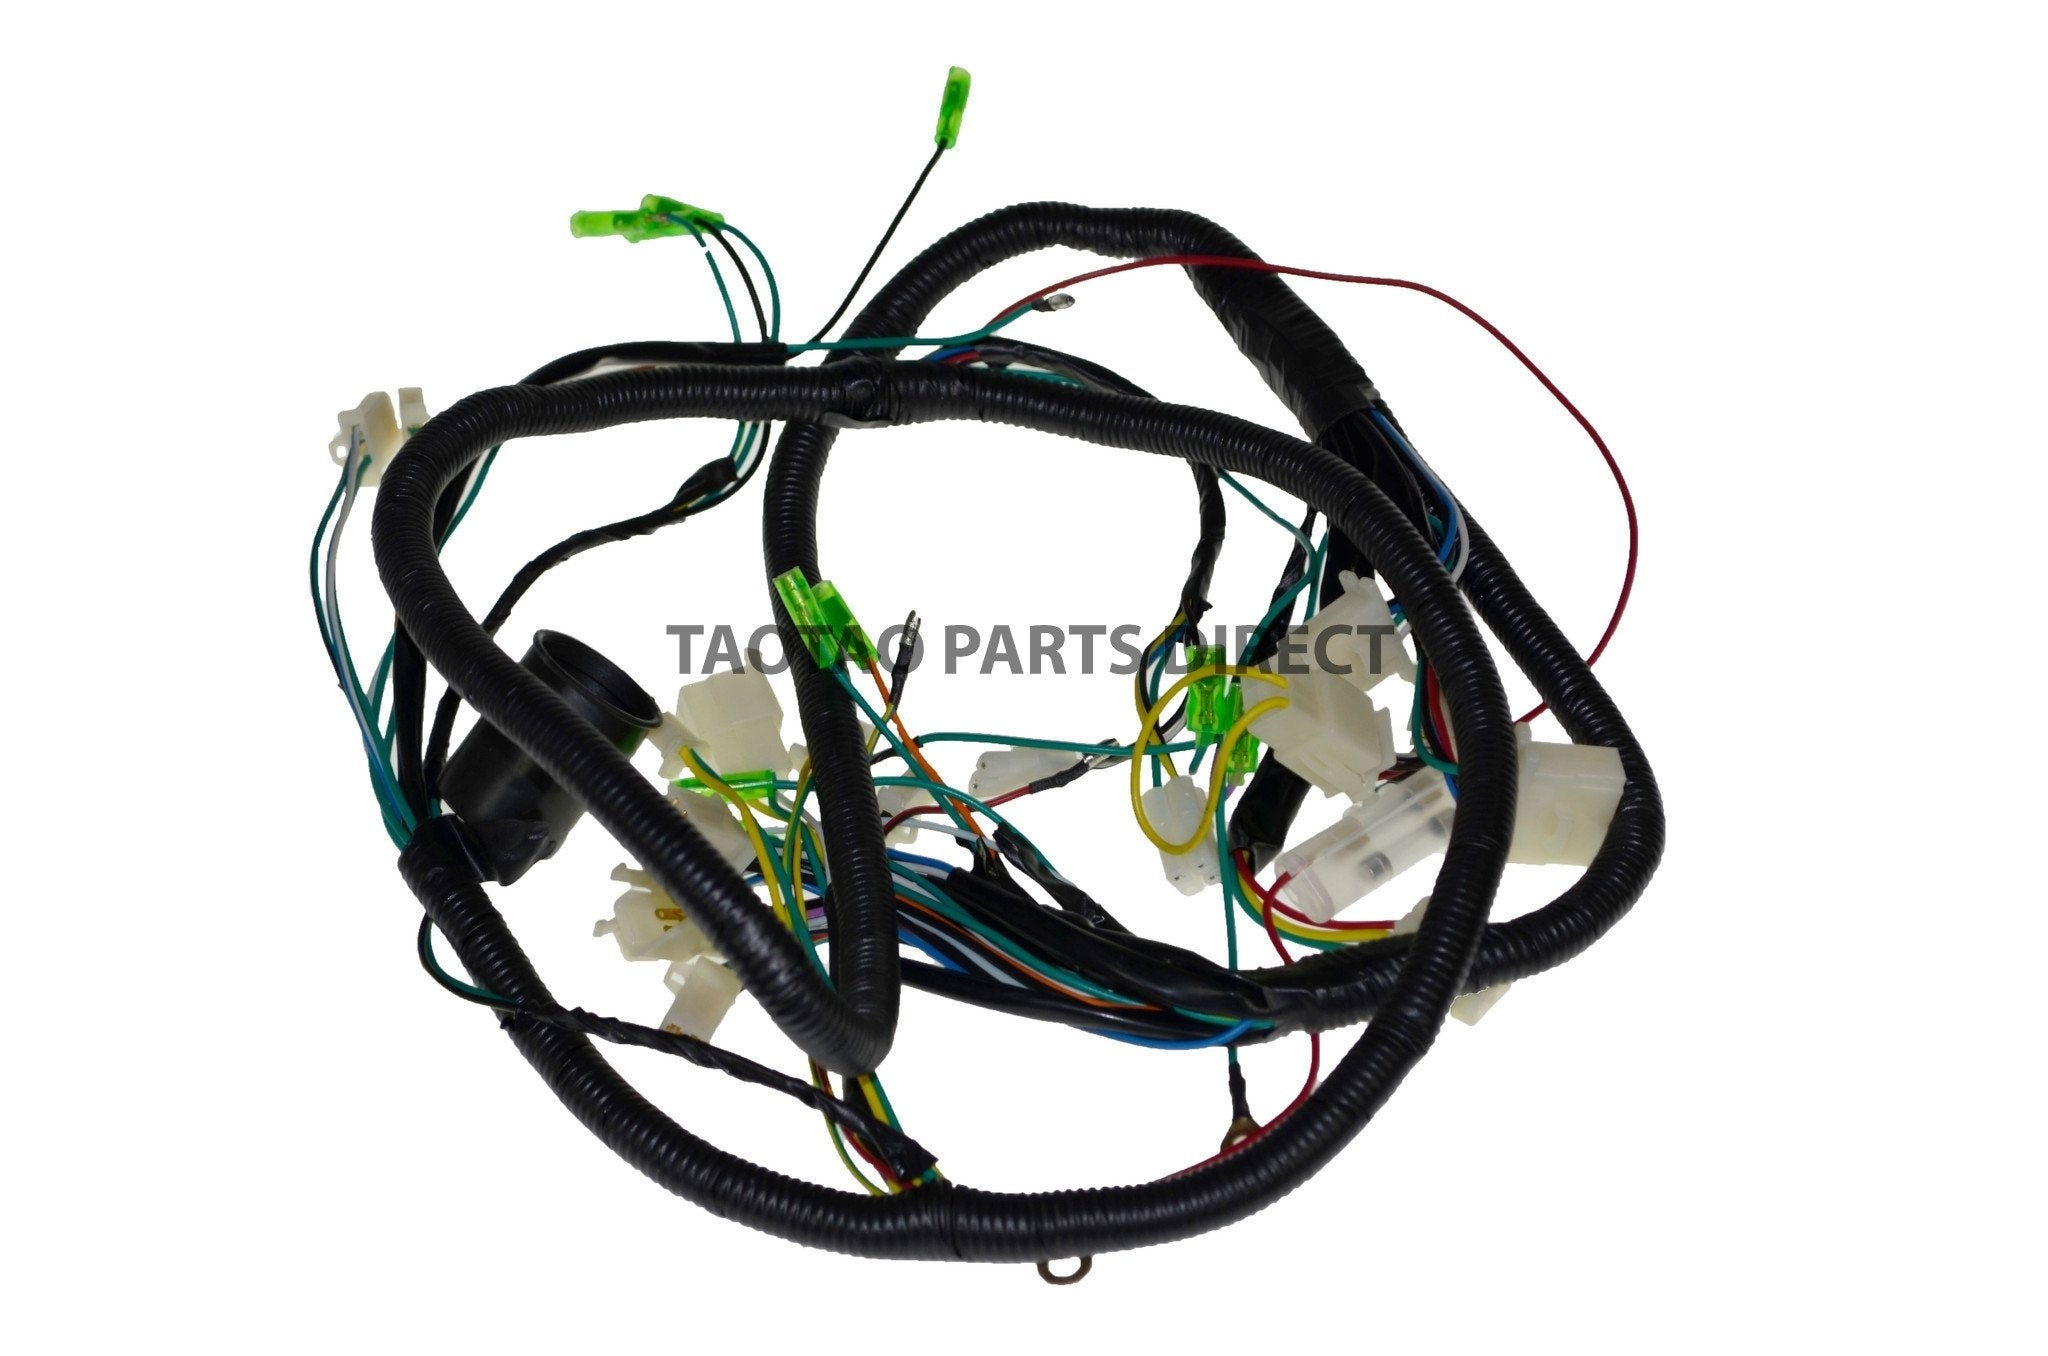 Thunder 50 Wire Harness | TaoTao Parts Direct